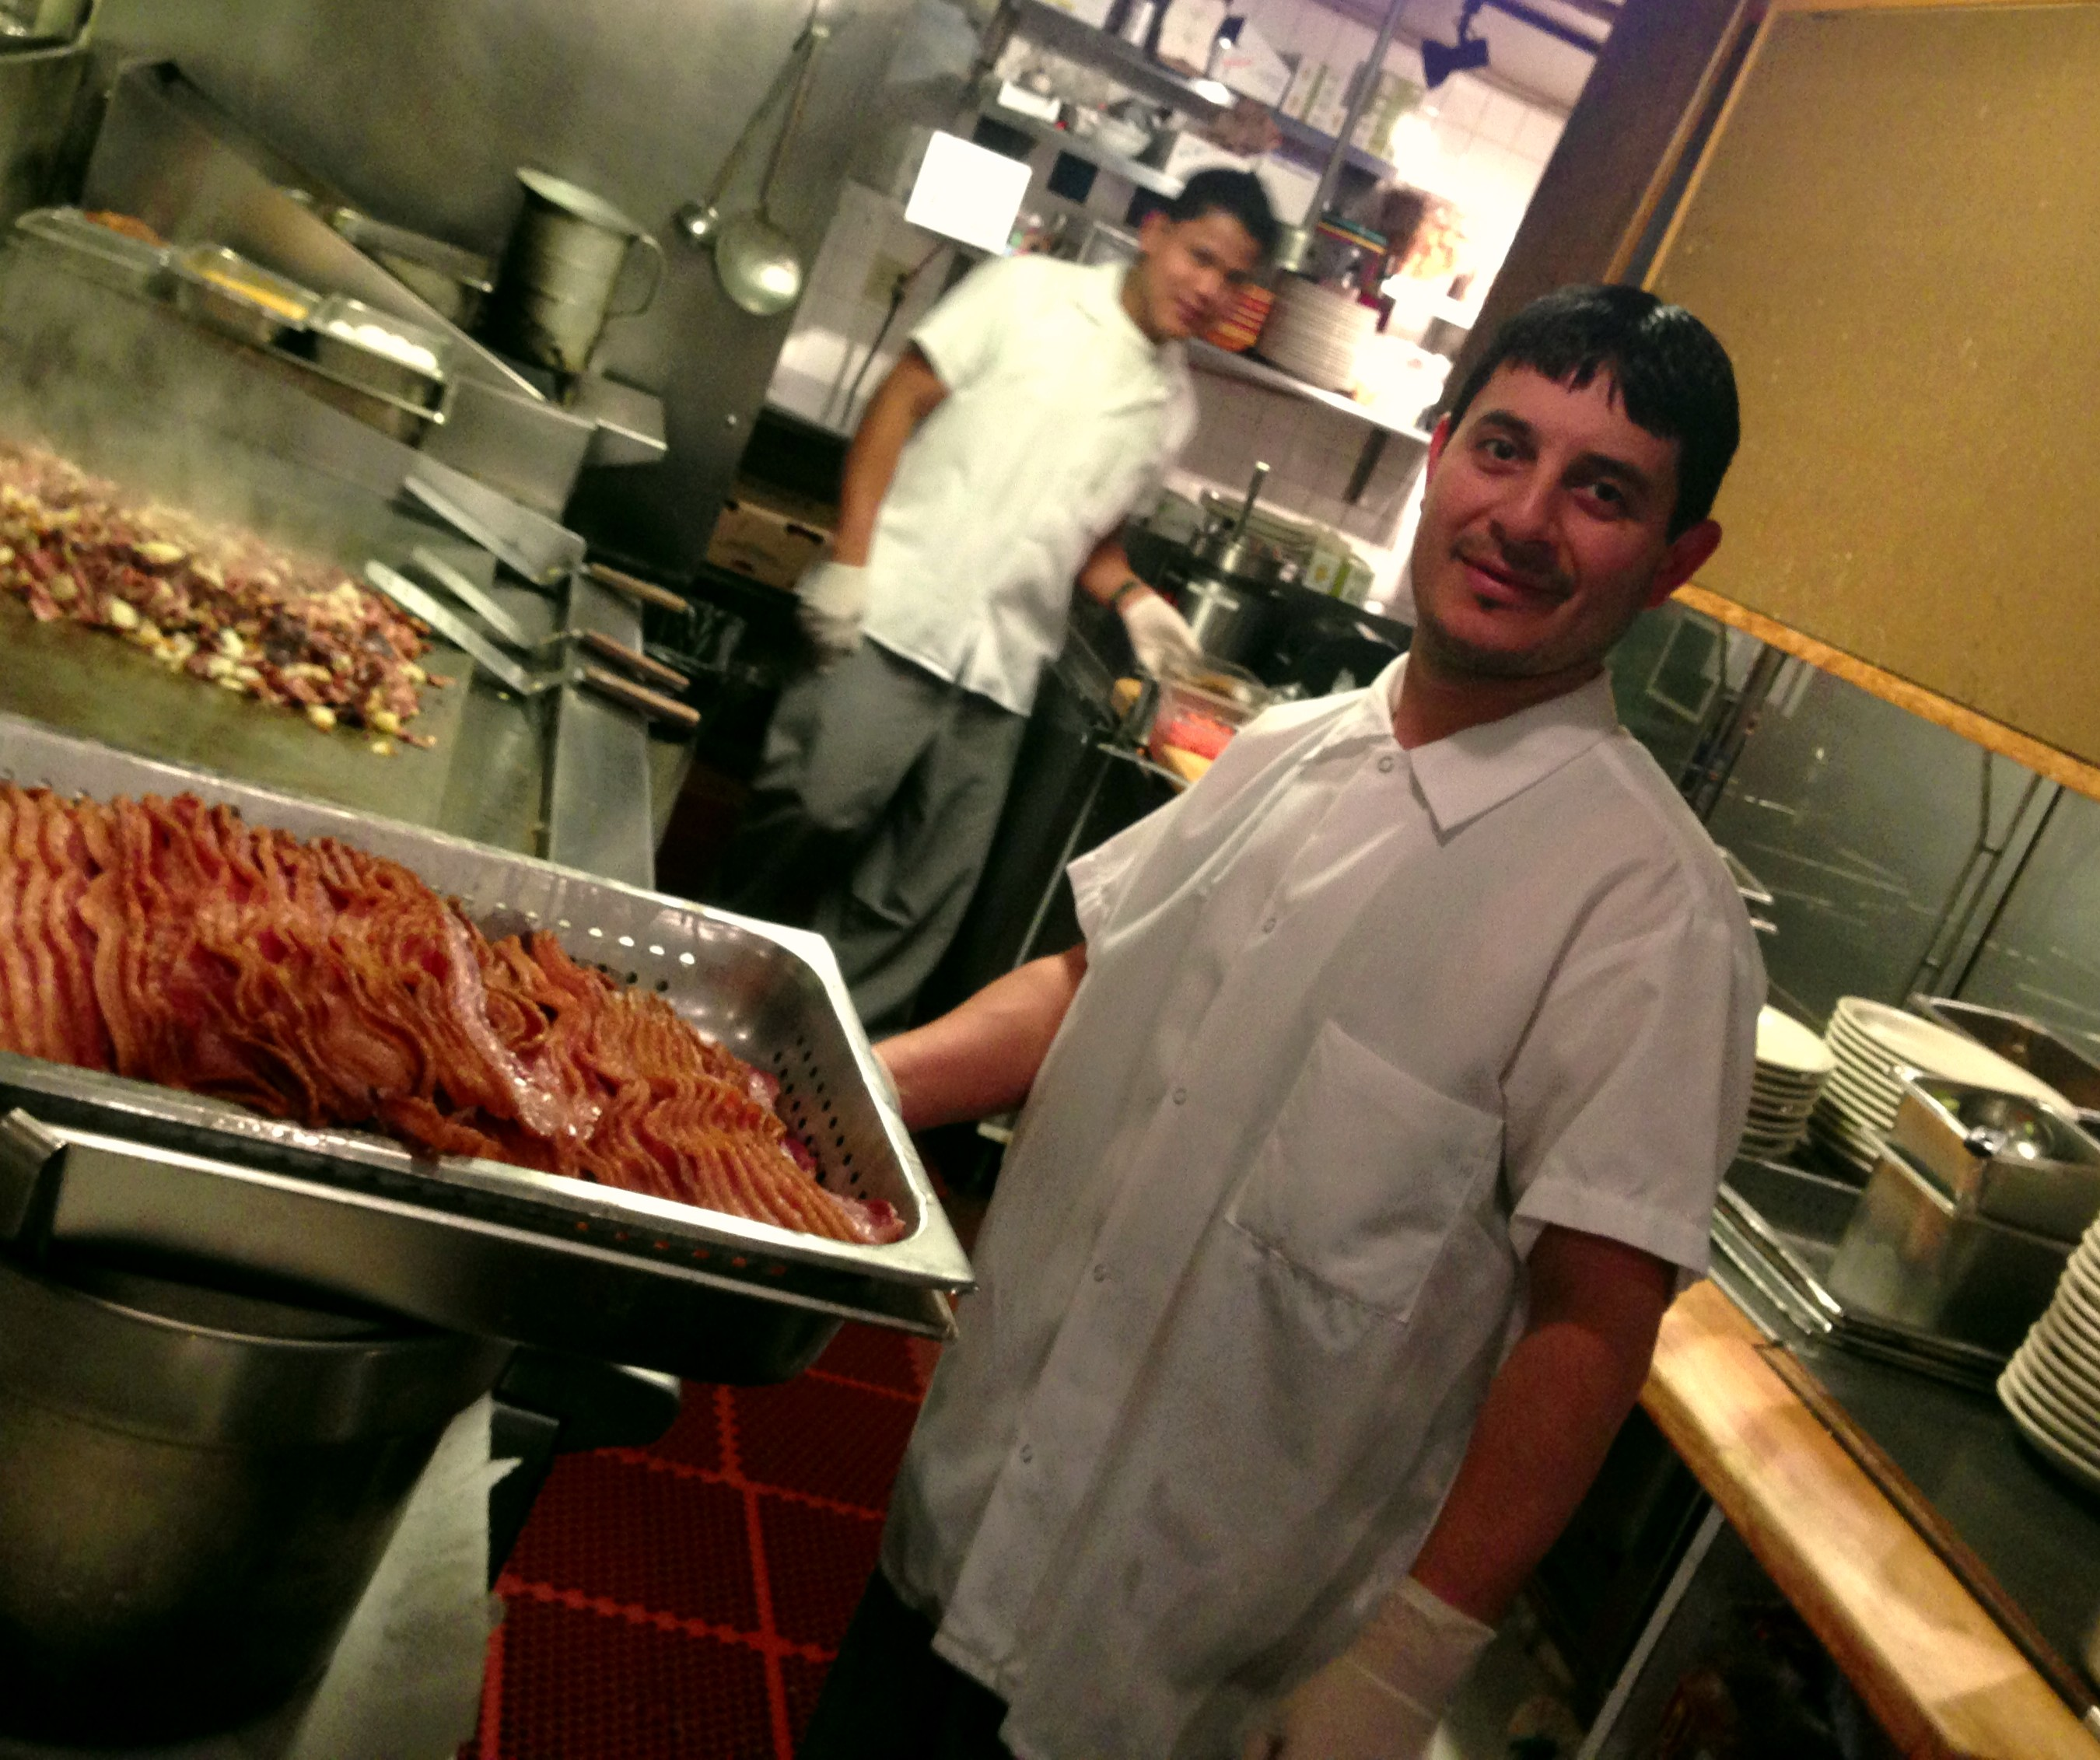 Our loyal breakfast pros. Two of the crew, all dedicated to you daily from 7AM through lunch and dinner!